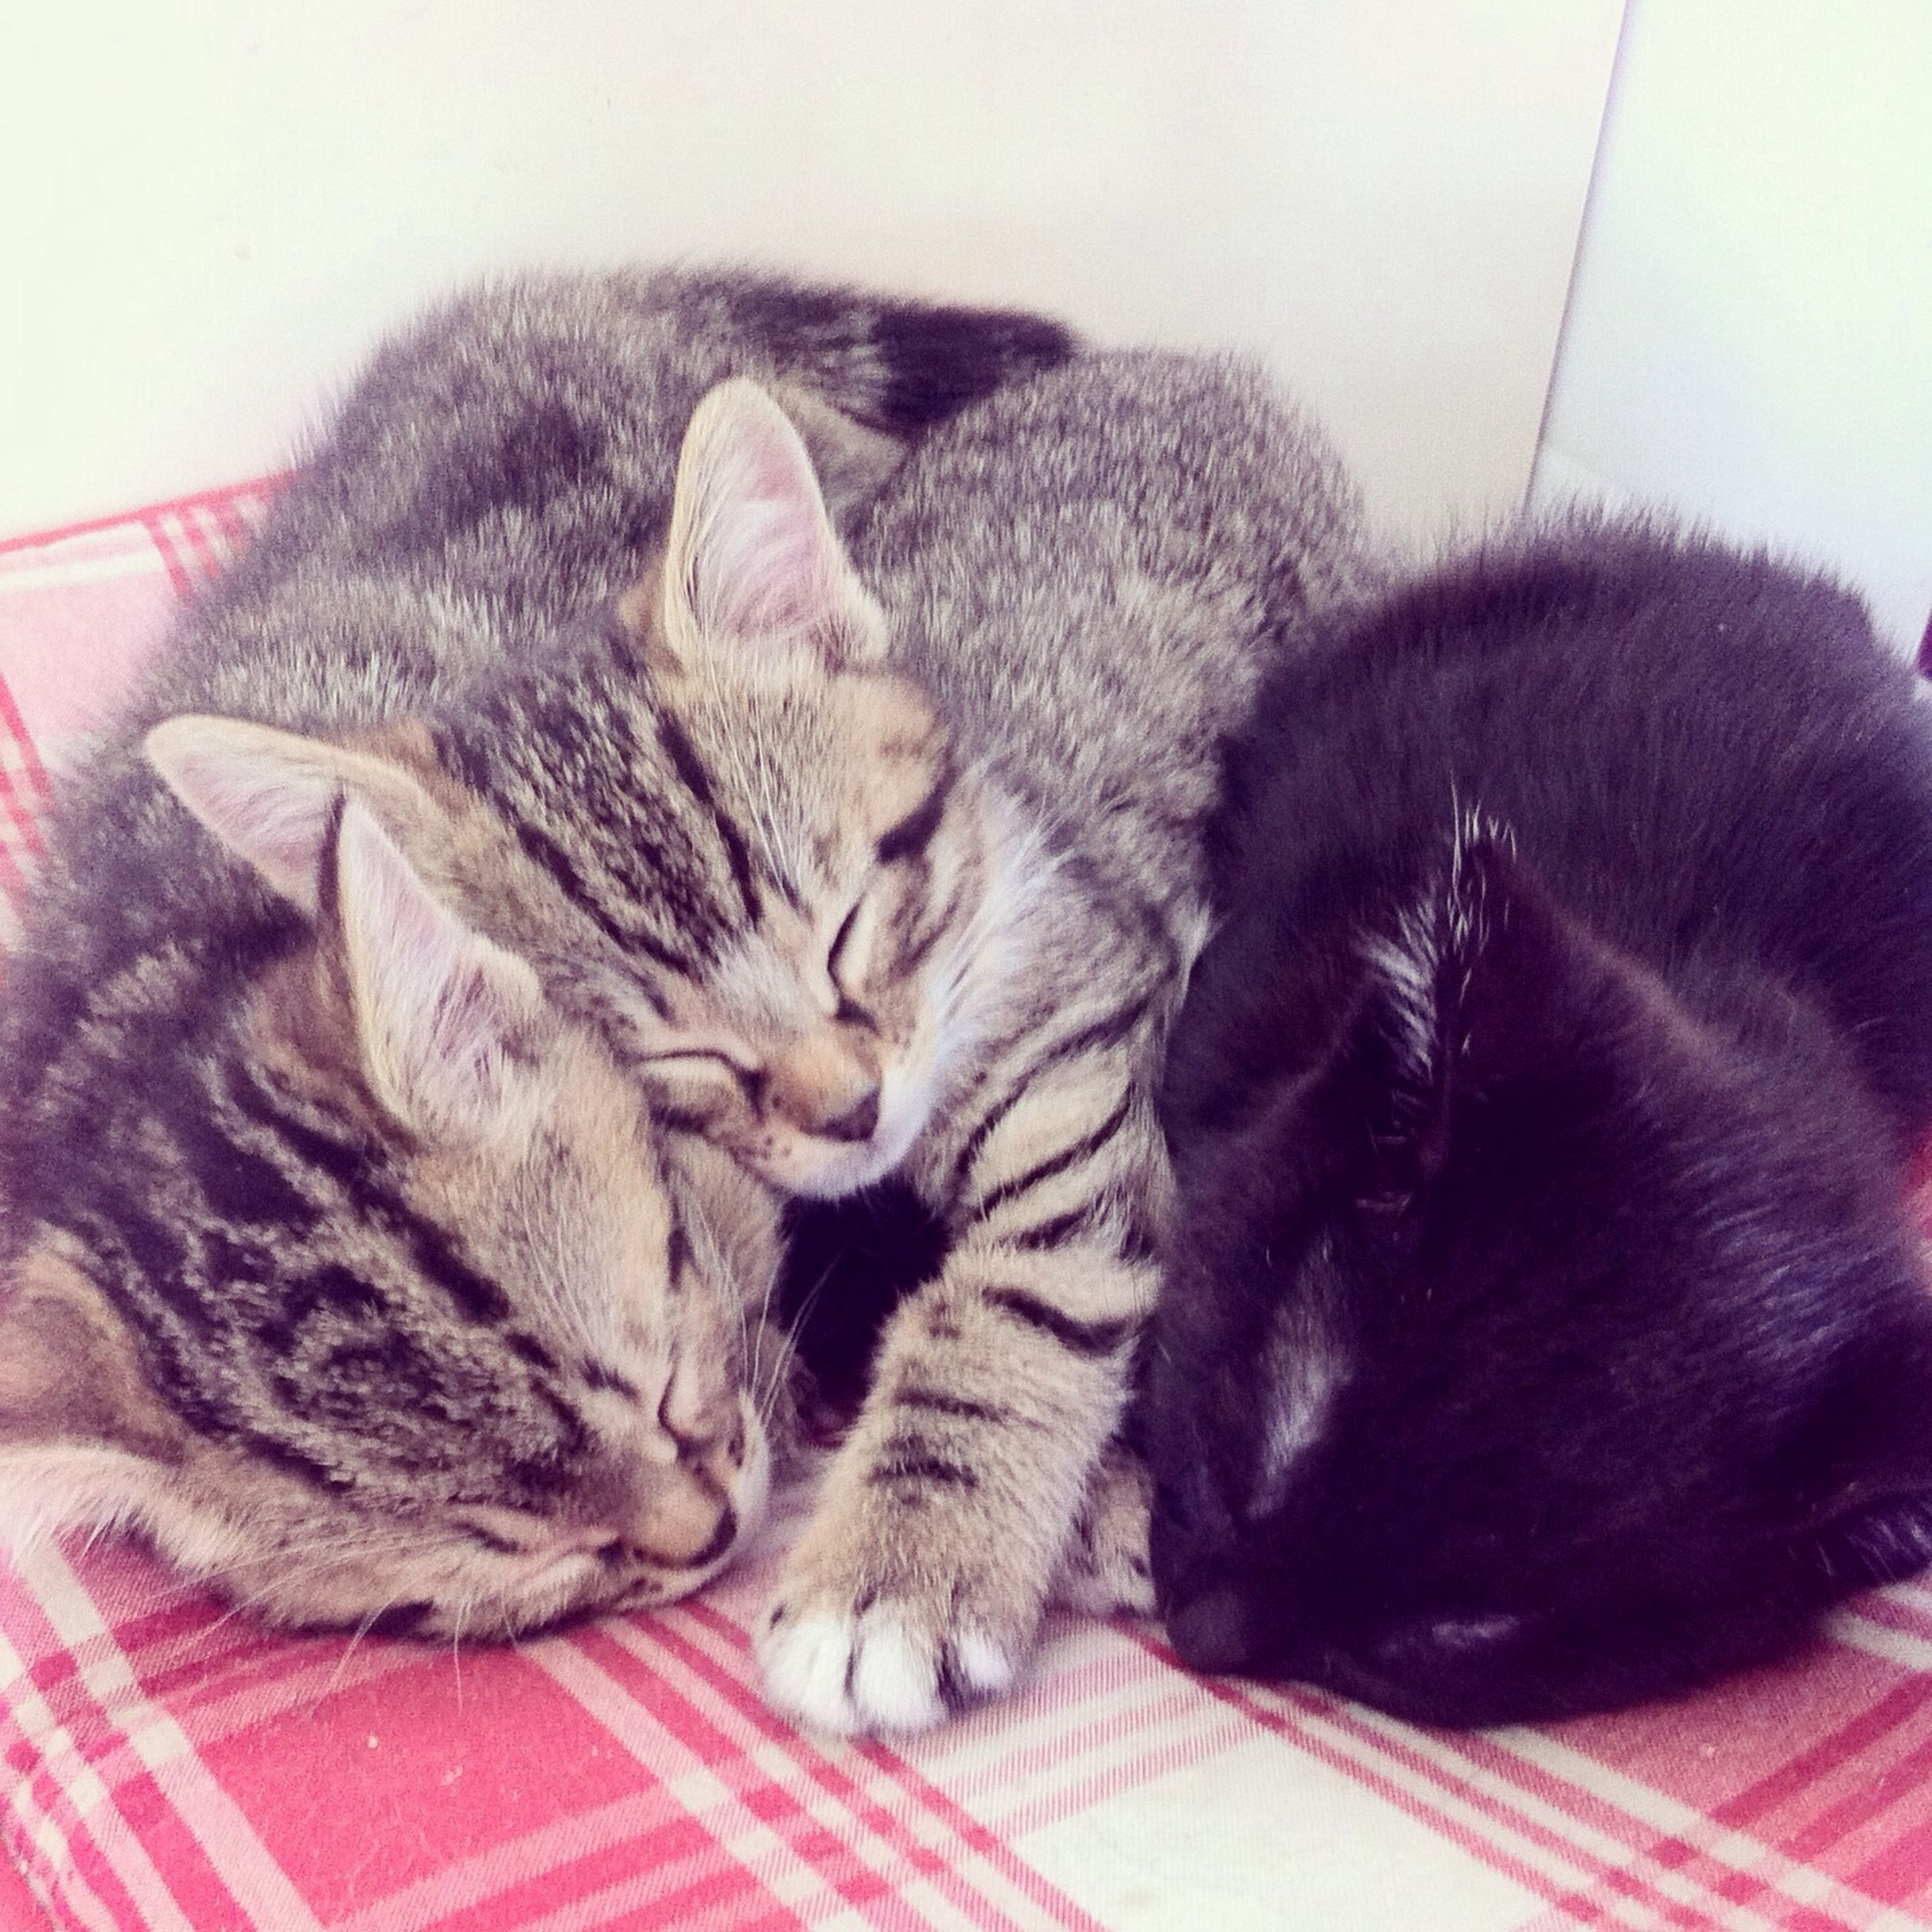 pets, domestic animals, animal themes, domestic cat, mammal, cat, one animal, indoors, relaxation, feline, sleeping, resting, lying down, whisker, two animals, eyes closed, close-up, togetherness, comfortable, high angle view